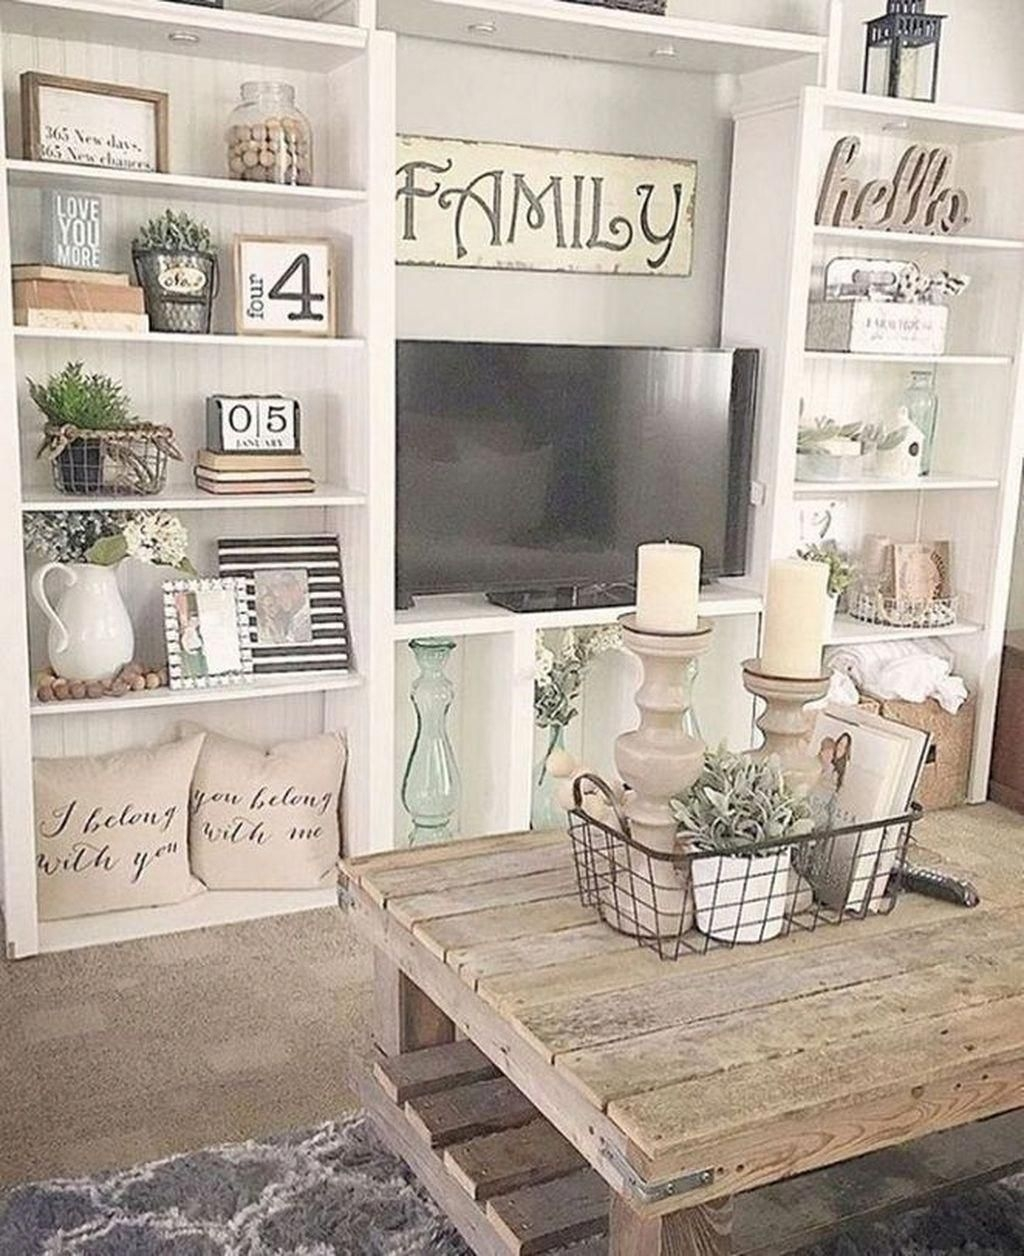 Gorgeous Pinterest Home Decor On Appealing Home Decor Ideas Pinterest Home Decor Ideas Living Room On Pinterest Home Decor